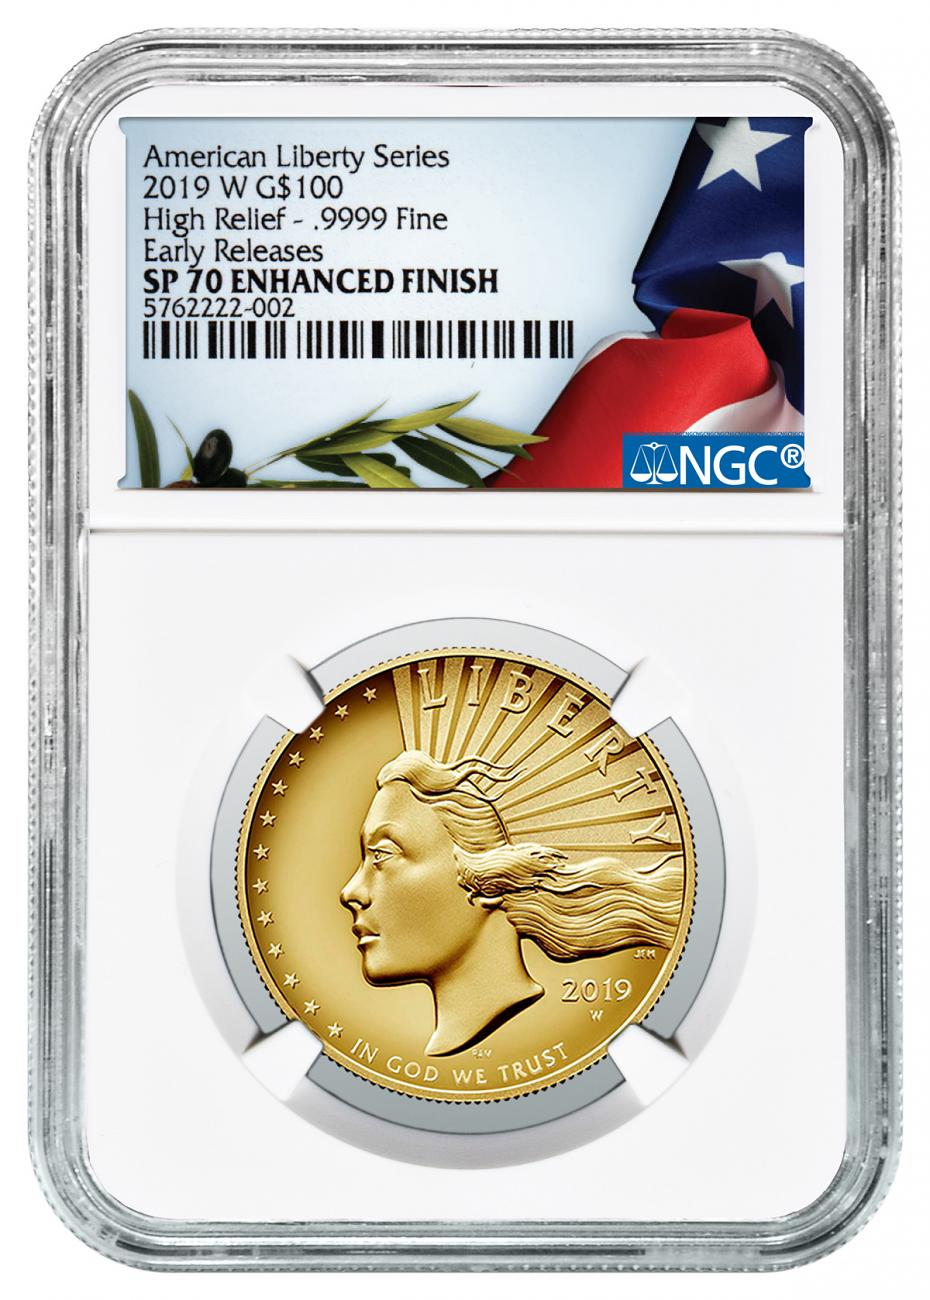 2019-W American Liberty Enhanced Finish High Relief $100 Gold Specimen Coin NGC SP70 ER Liberty Flag Label